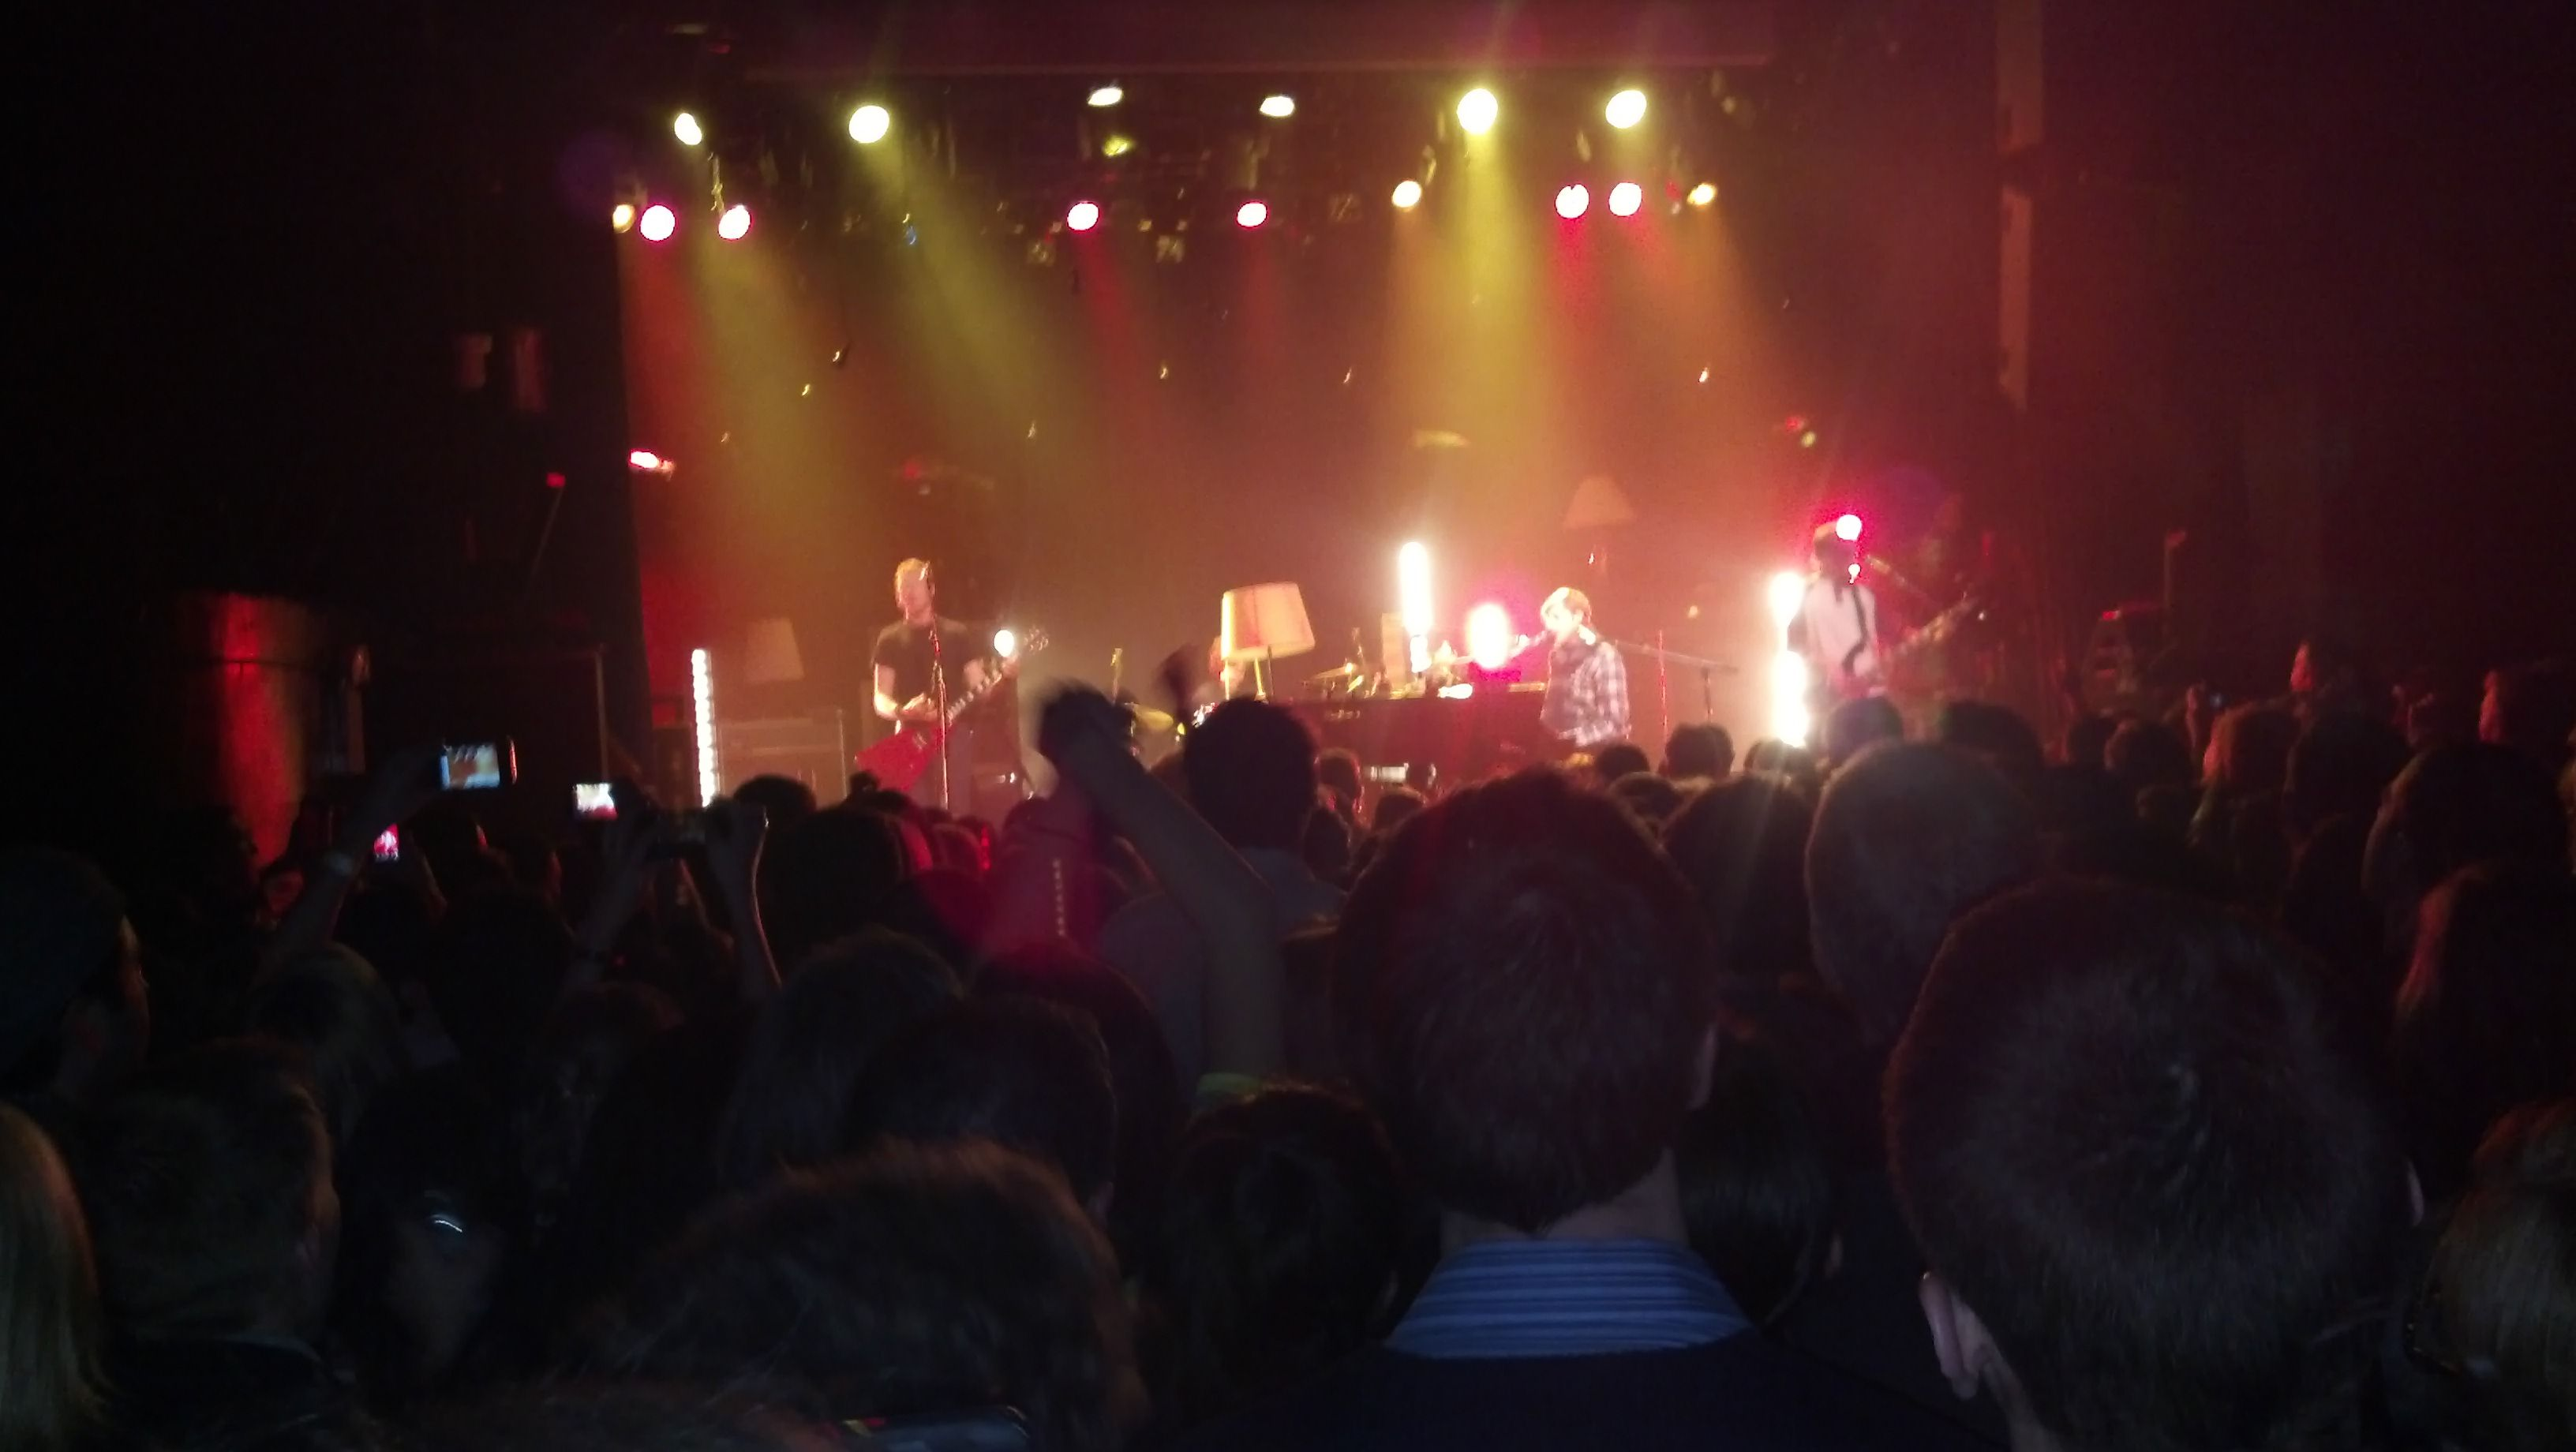 Day 4: what you did tonight.... Jacks mannequin at Irving plaza!